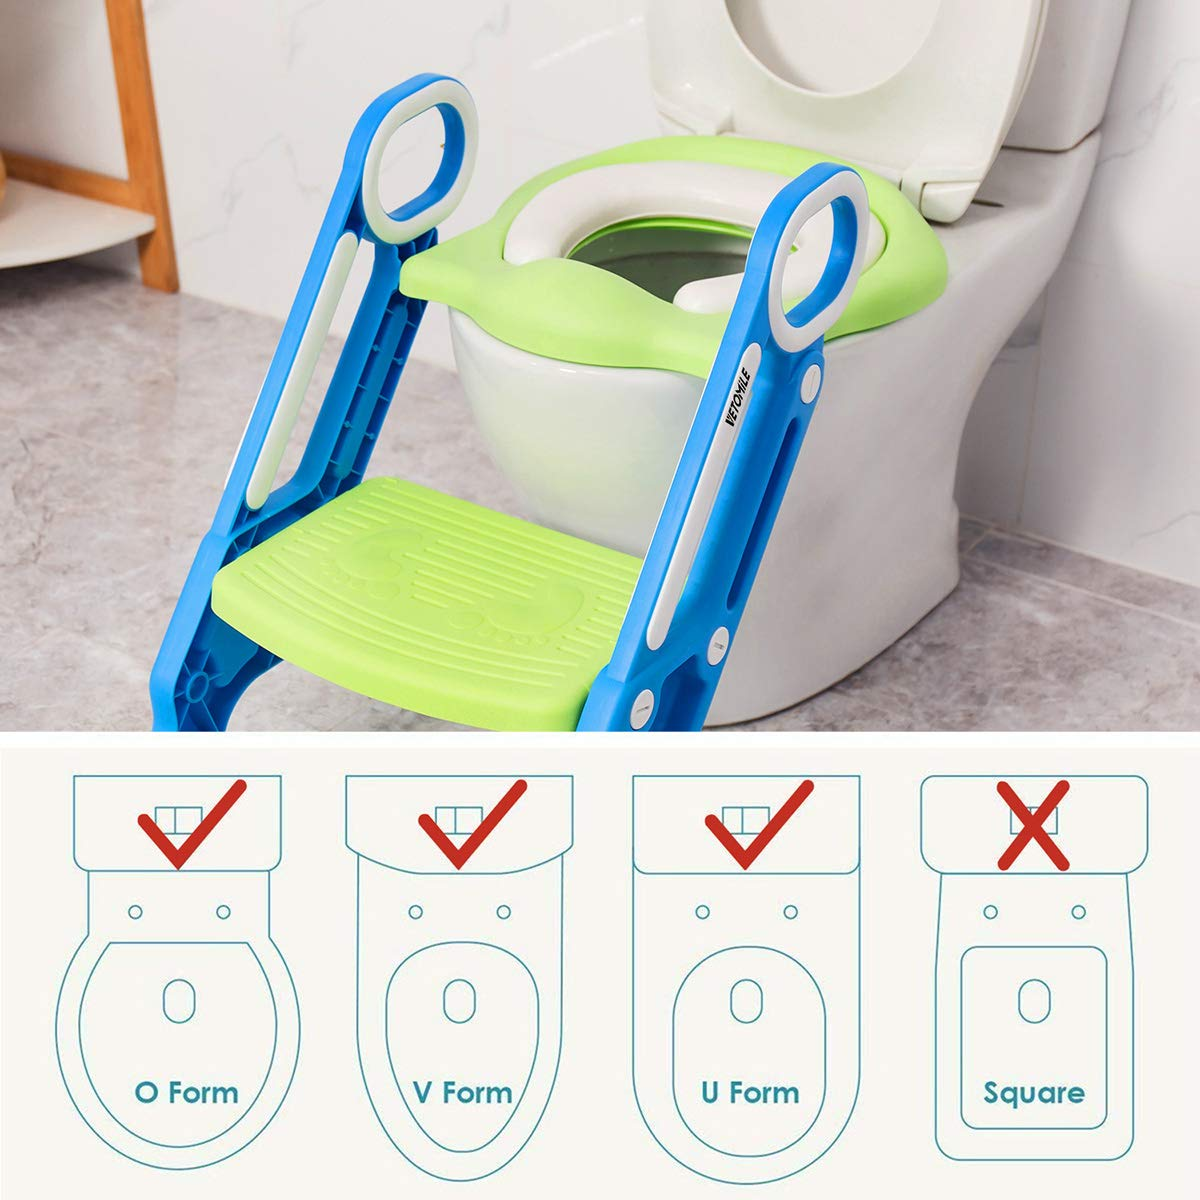 VETOMILE Baby Potty Toilet Trainer Seat for Children Kids Toddles with Adjustable Sturdy Non-Slip Step Stool Ladder and 2 PU Leather Replaceable Soft Padding Suitable for O V U Shaped-Toilets by VETOMILE (Image #6)